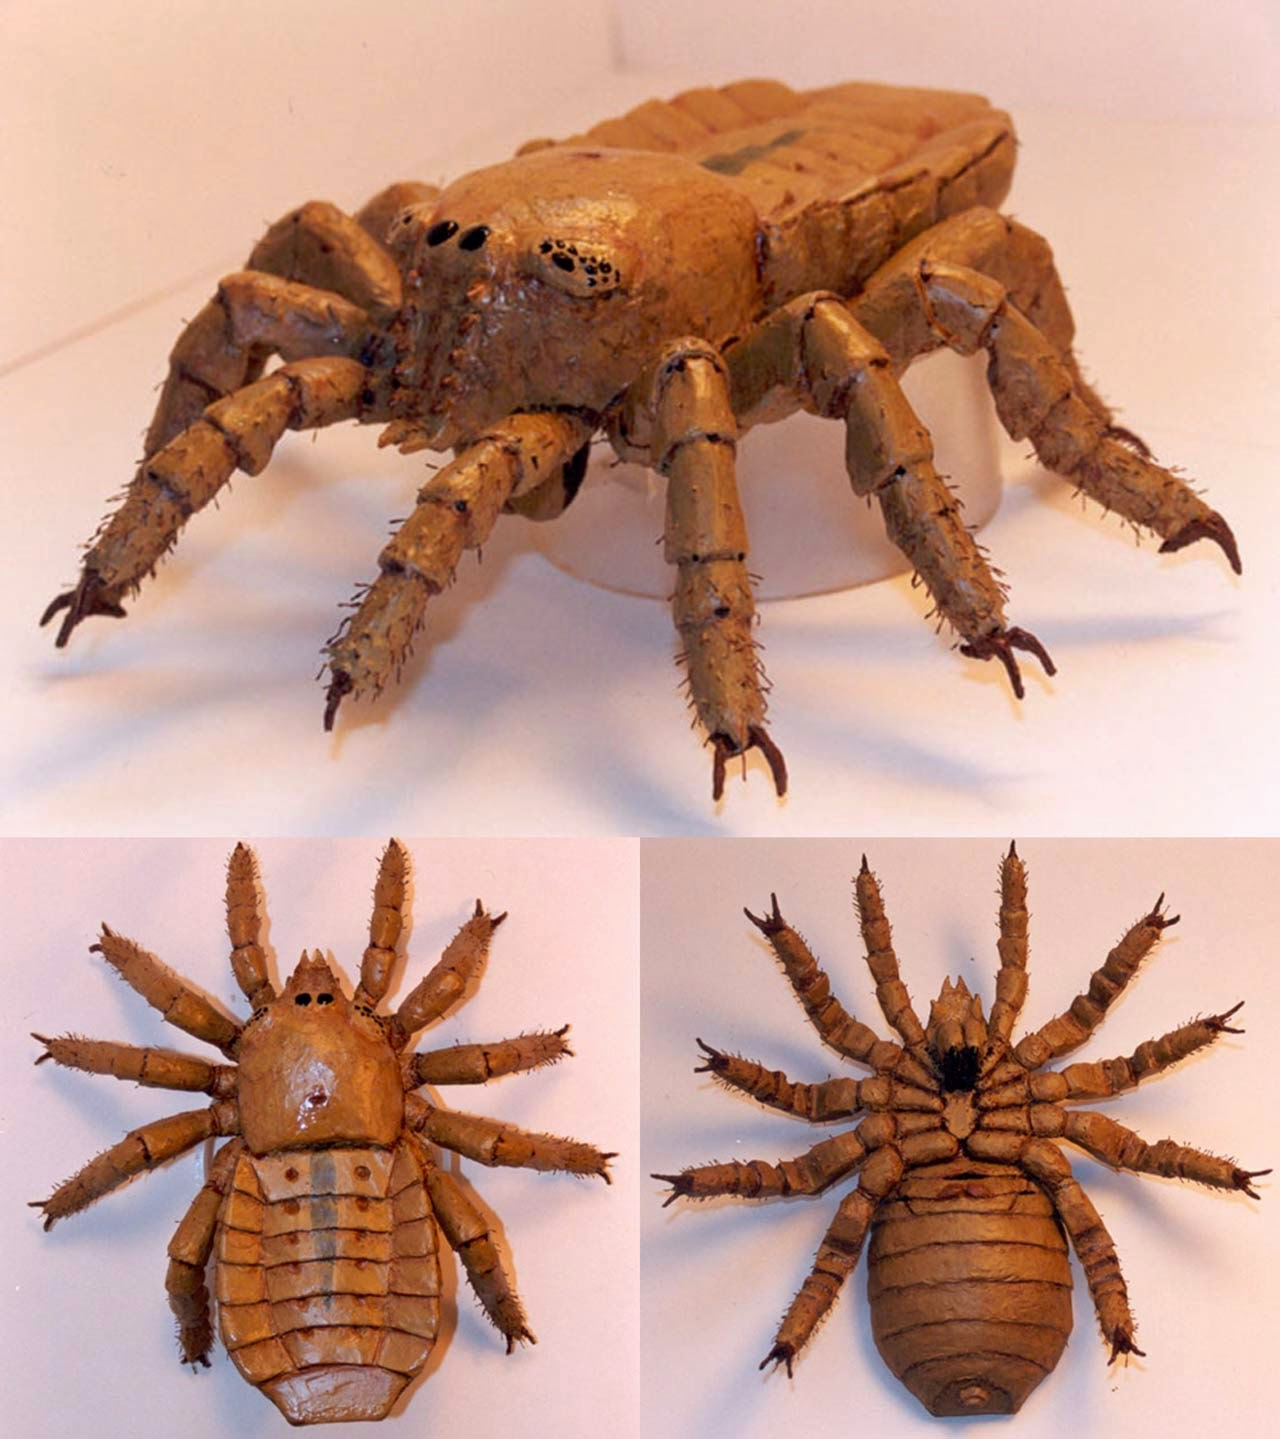 Ancient Arachnid 'brought Back To Life'